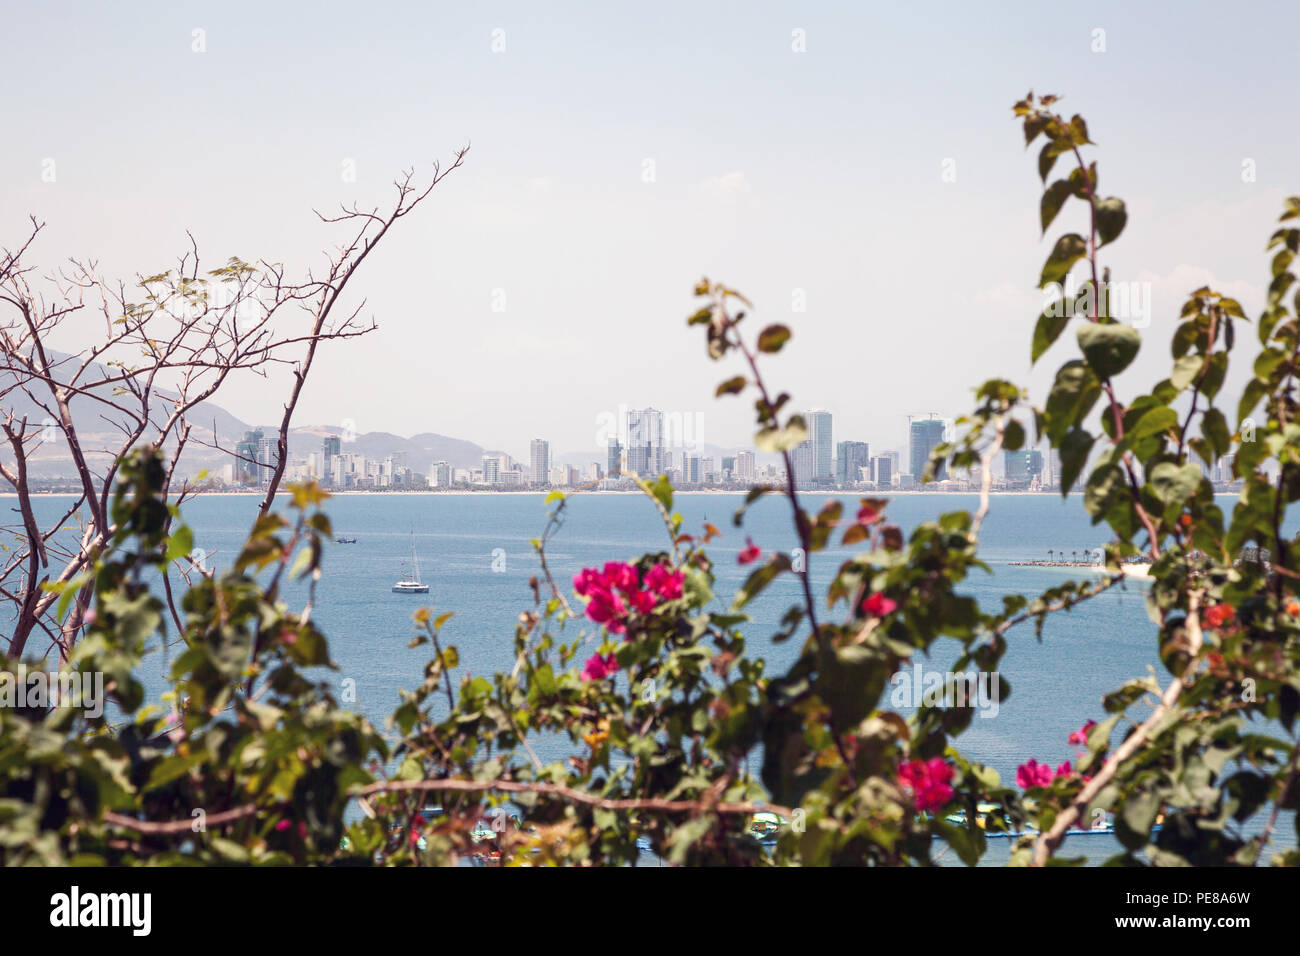 Asian City Nha Trang Skyline Over The Green Branches With Pink